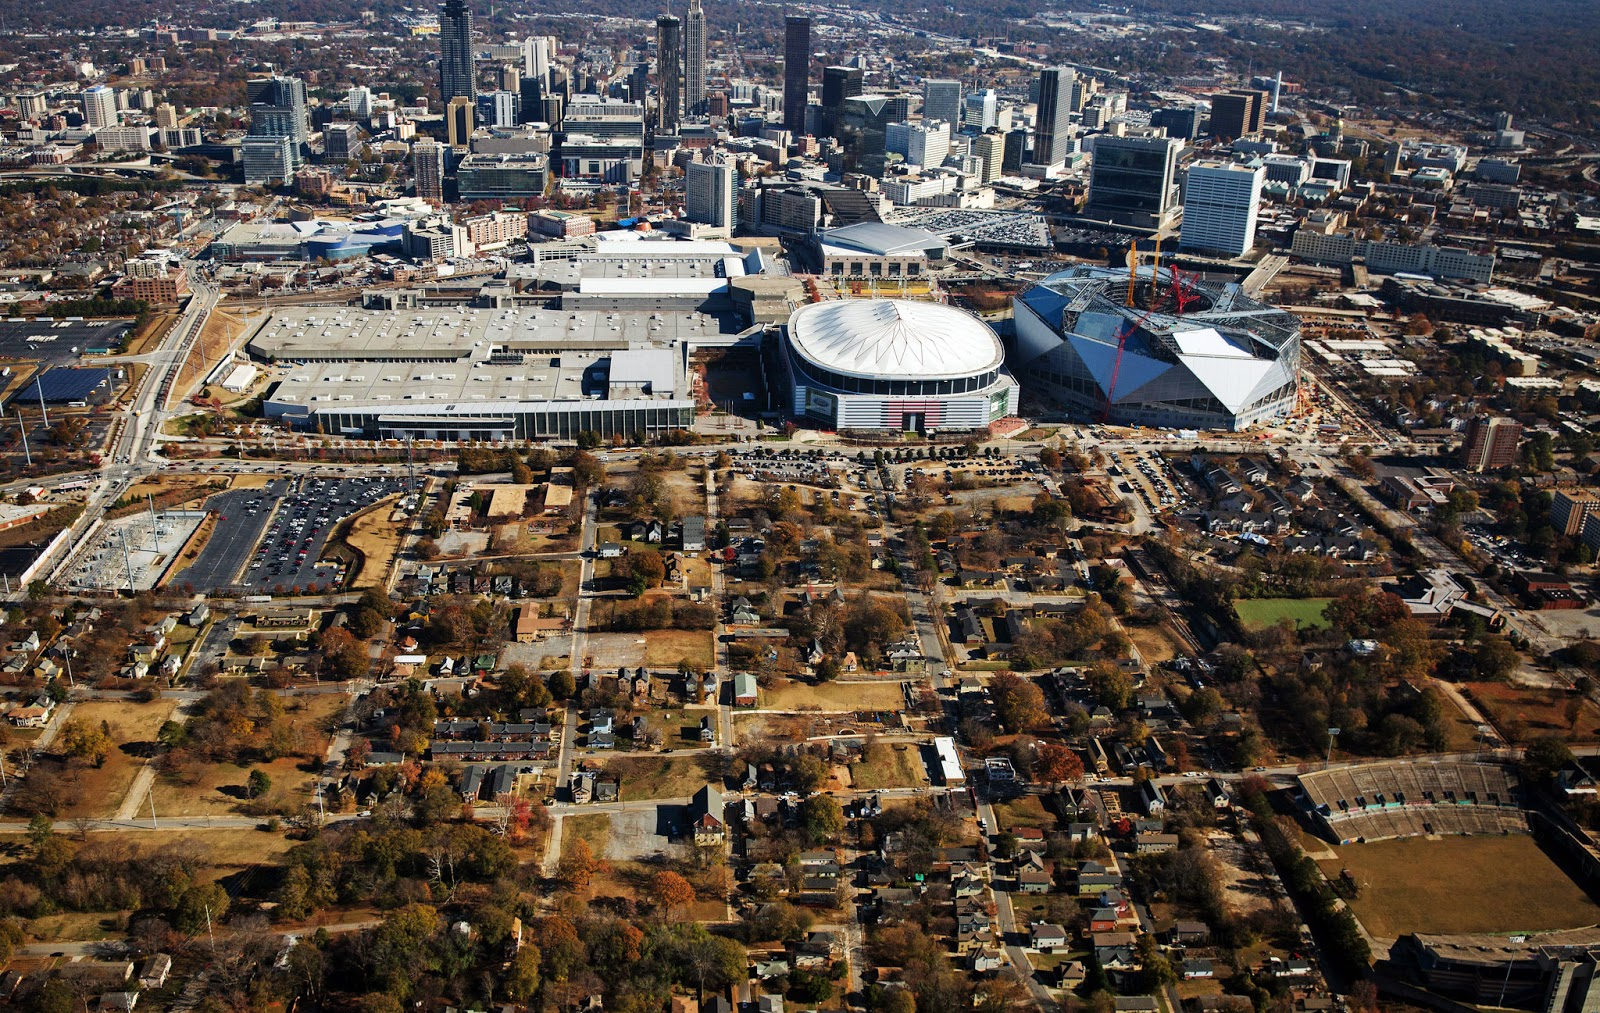 Rebuilding place in the urban space over focusing on for Mercedes benz stadium application